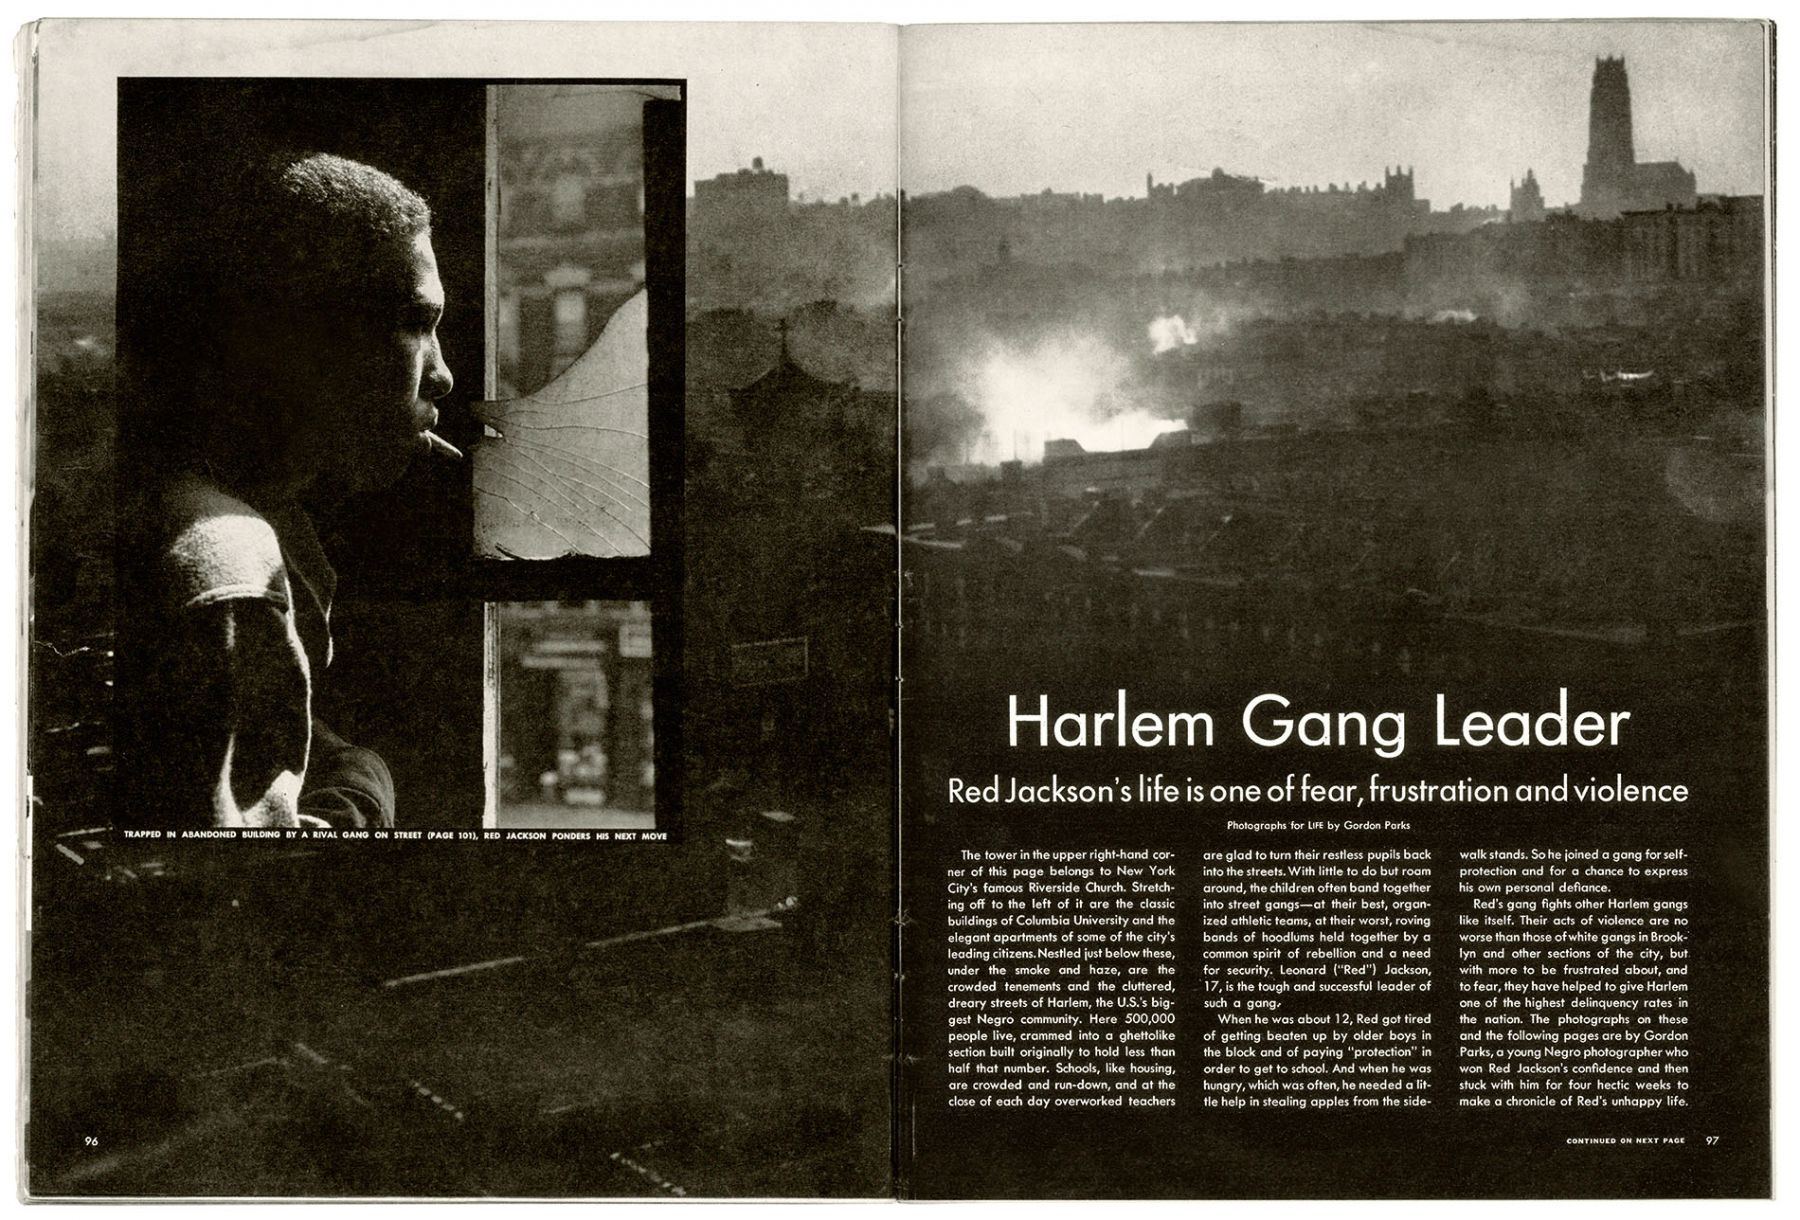 Gordon Parks photography harlem